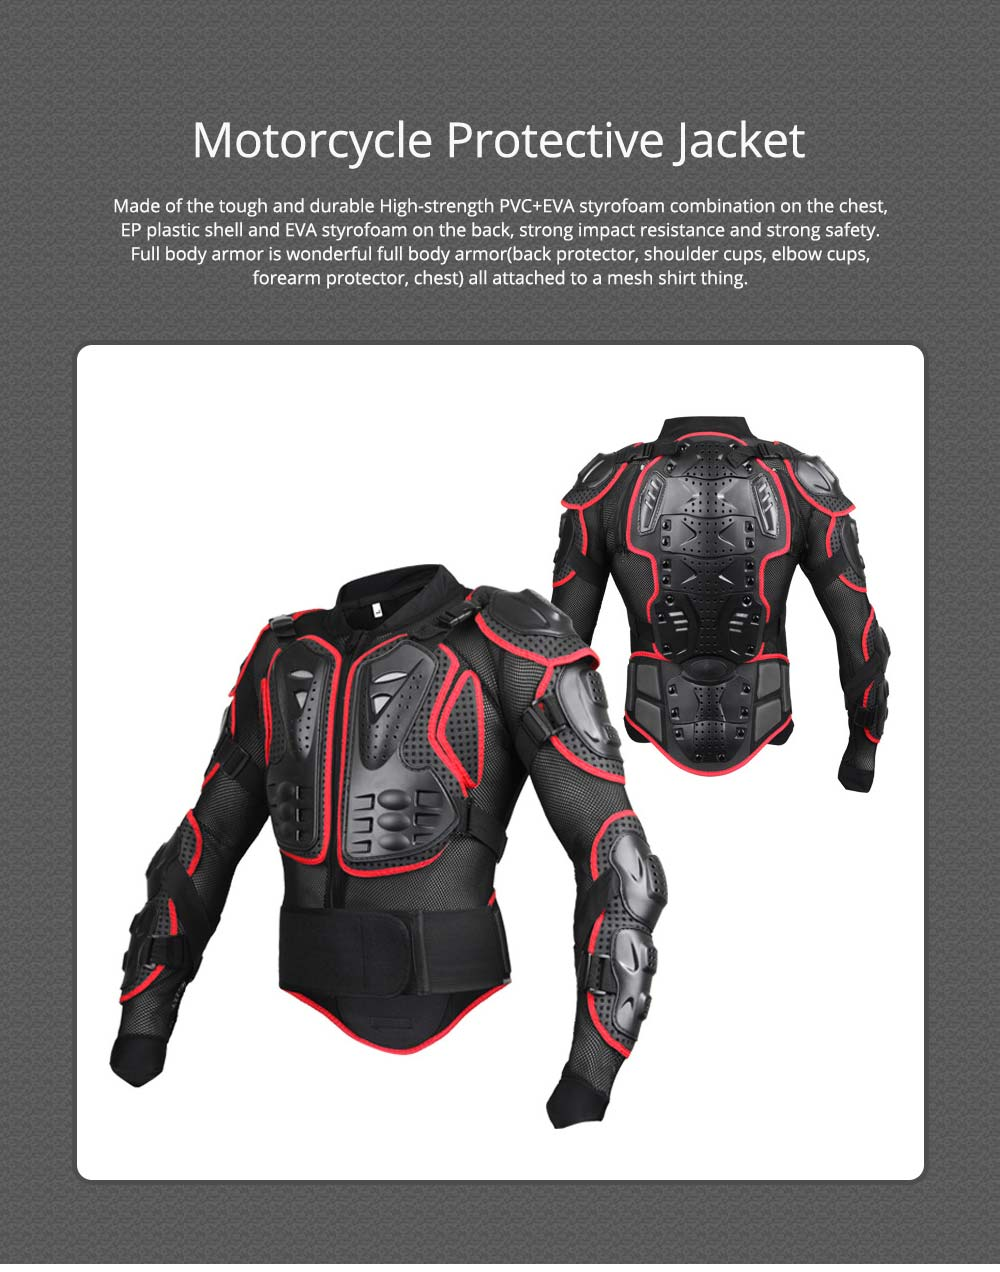 Motorcycle Protective Jacket Full Body Motorcycle Armor Protector Uniform, Long Sleeve Racing Amour for Cross-country Cycling Outdoors Sports 0